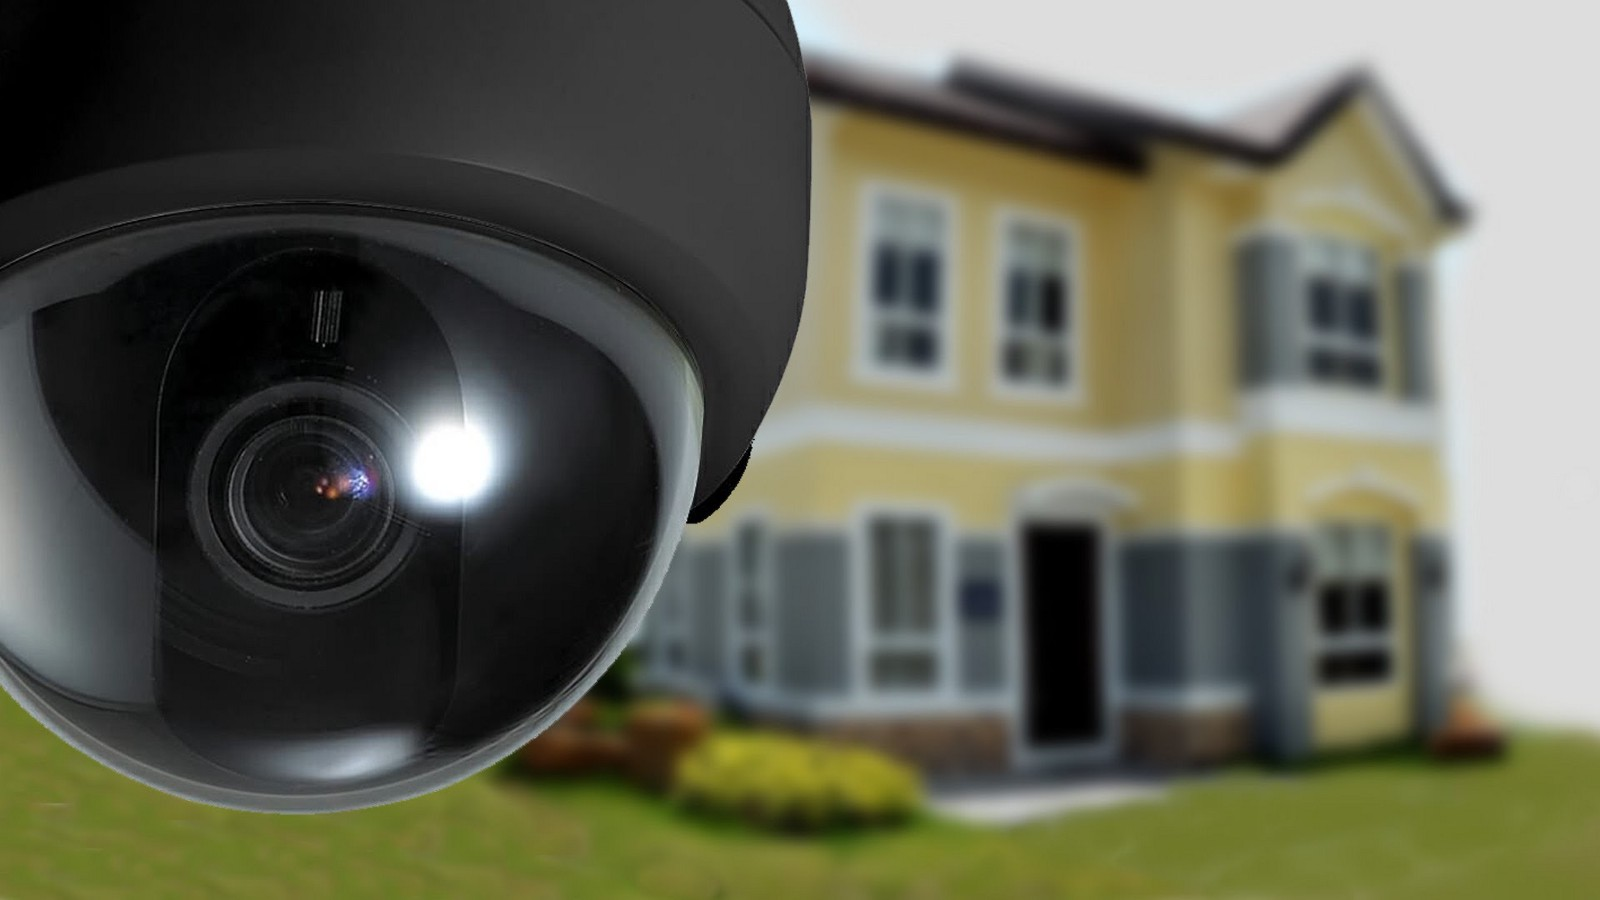 Experience Best Home Security Camera System With Snoos Home Alarm. Our  Friendly, Expert Sales Consultants And Technicians Are Here To Help You Set  Up And ...